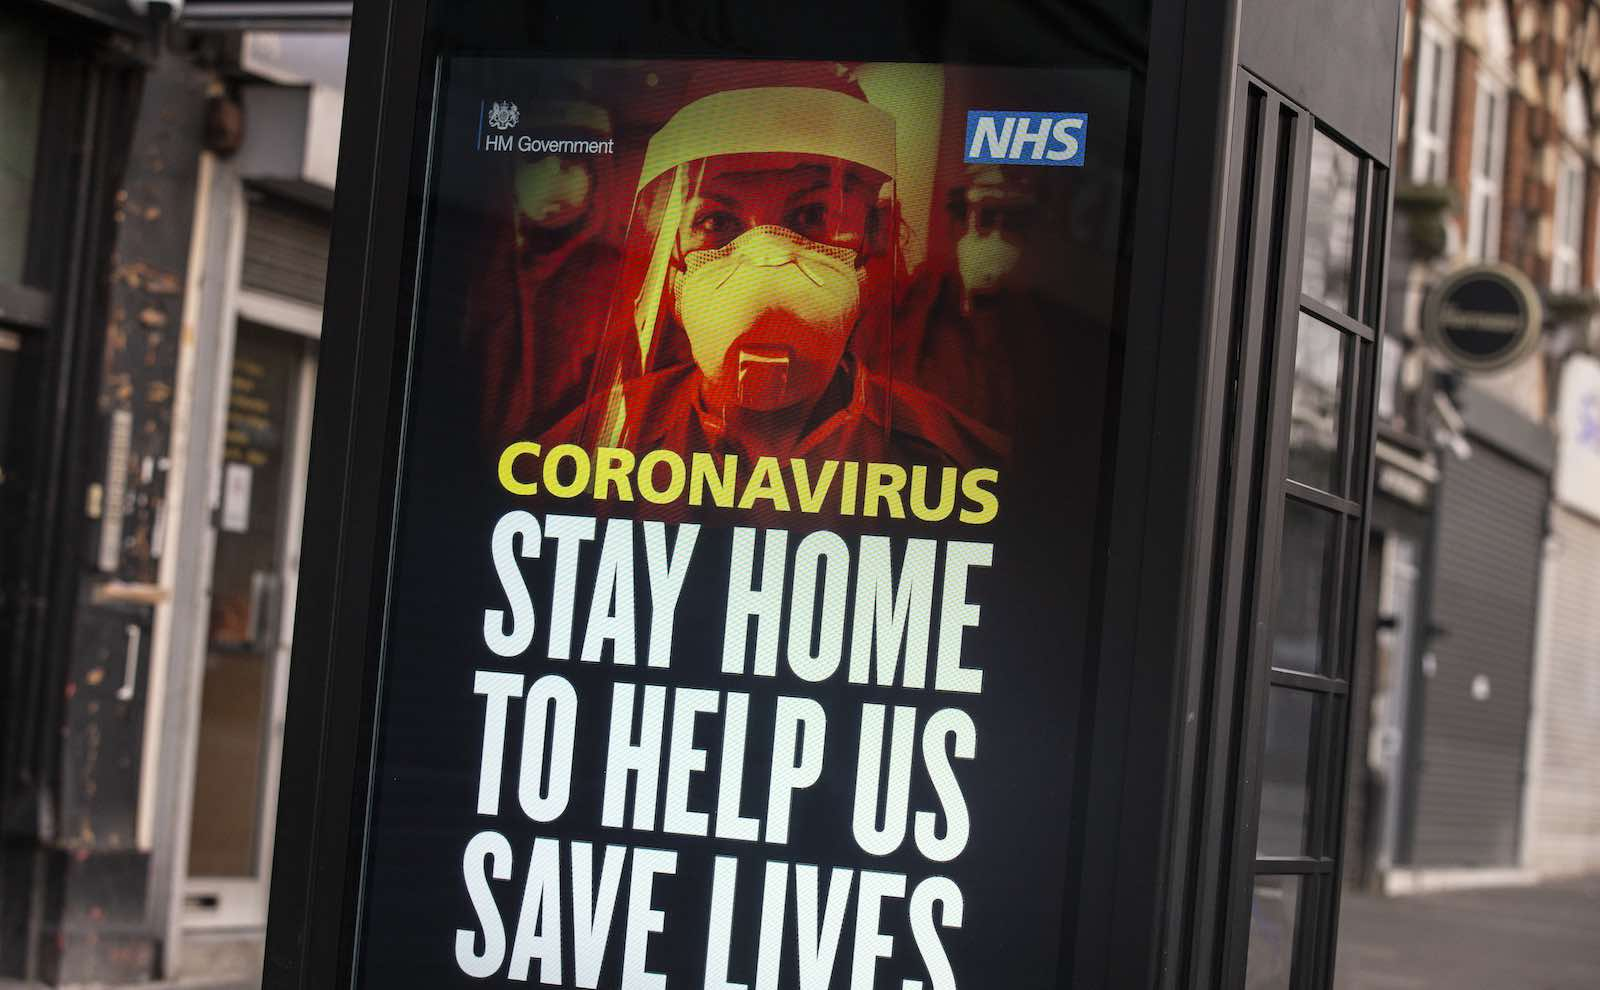 A message from the National Health Service on a billboard in Stamford Hill, London, 8 April (Hollie Adams/Getty Images)